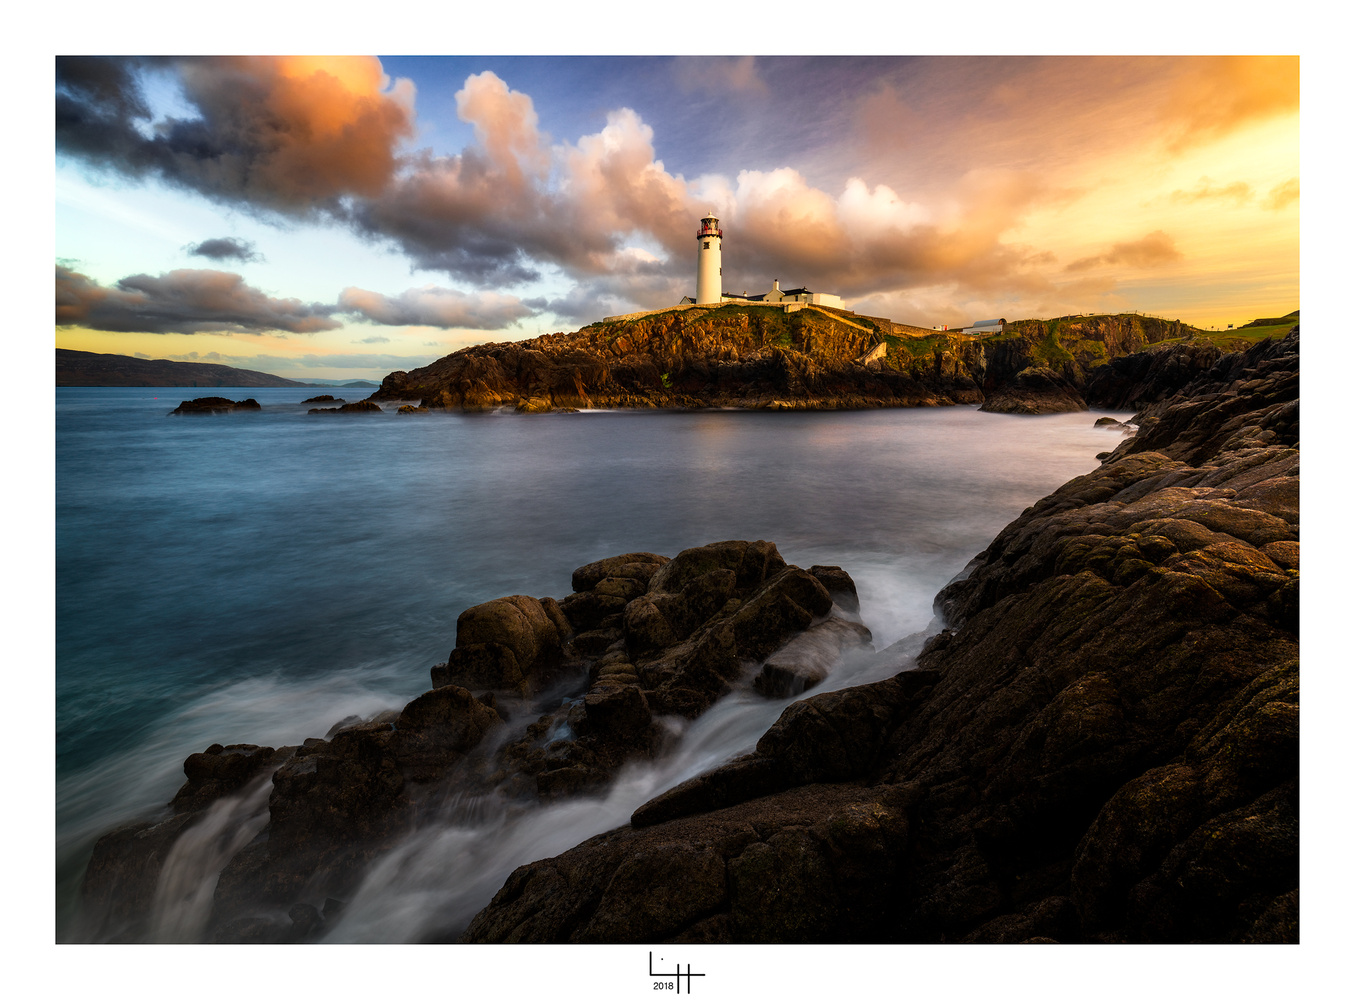 Fanad Head, Co Donegal, Ireland by Lionel HUG